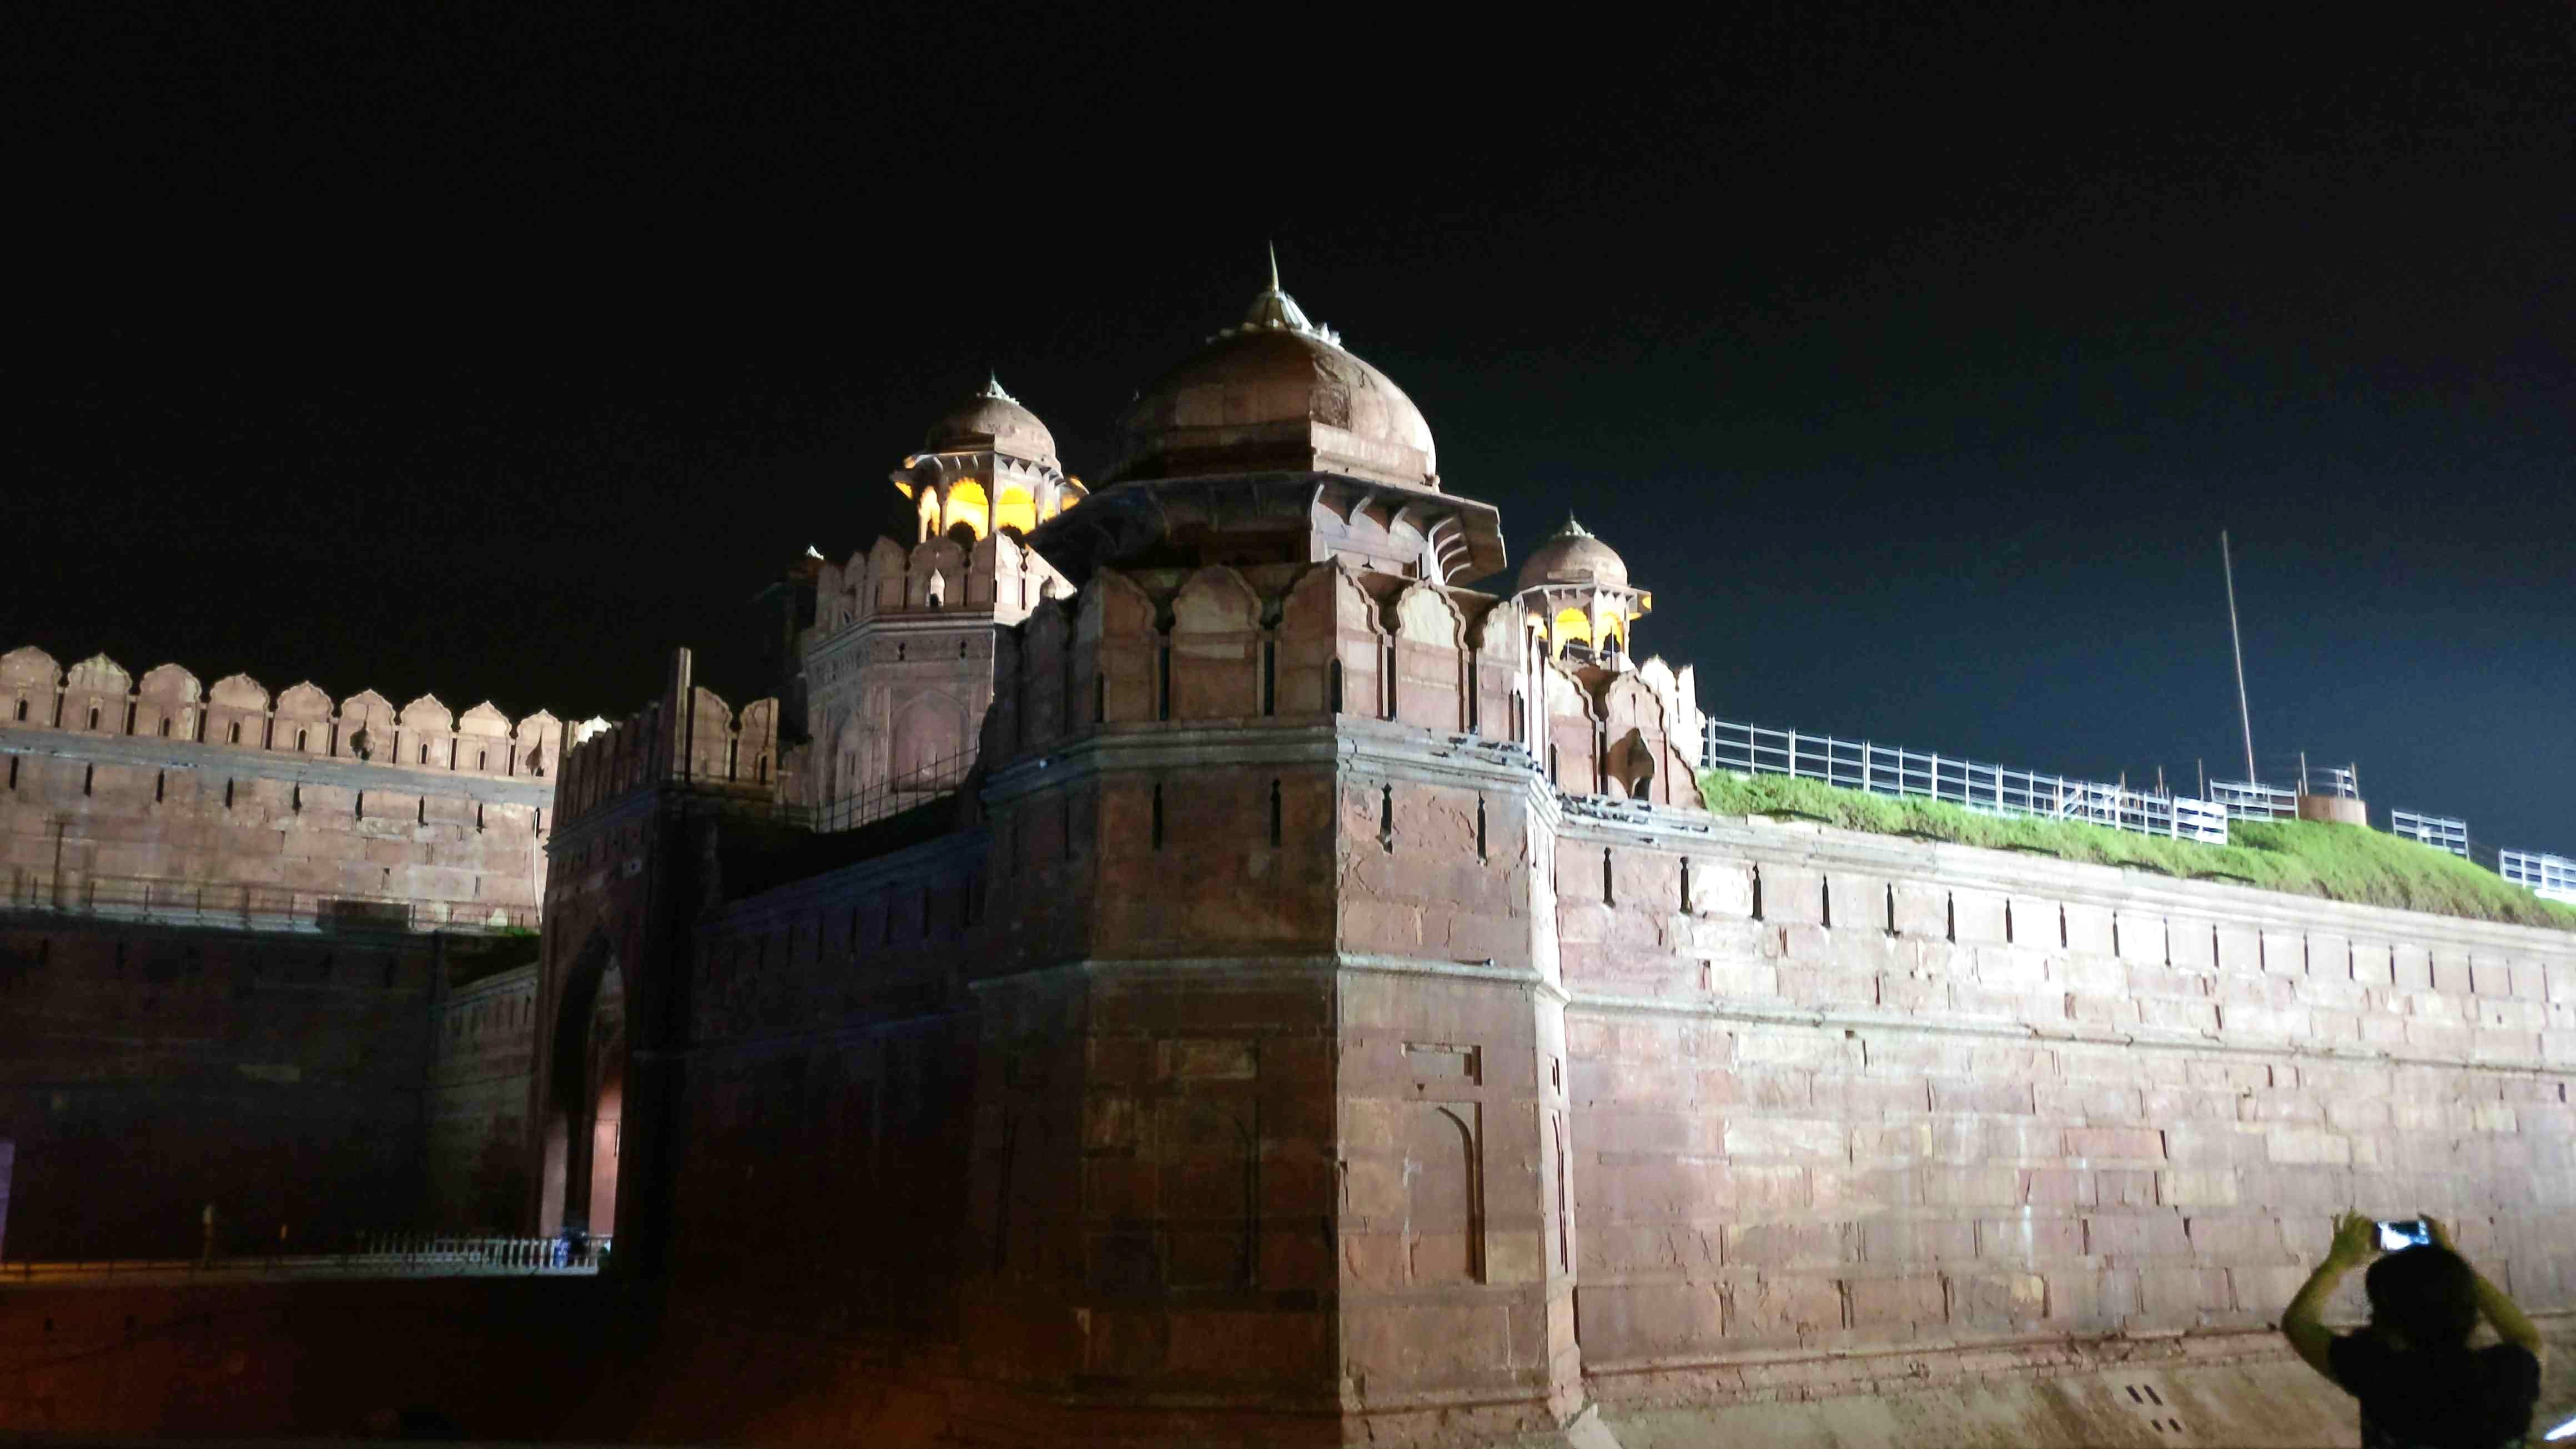 Landmark,Night,Fortification,Architecture,Wall,Building,Castle,Historic site,Palace,City